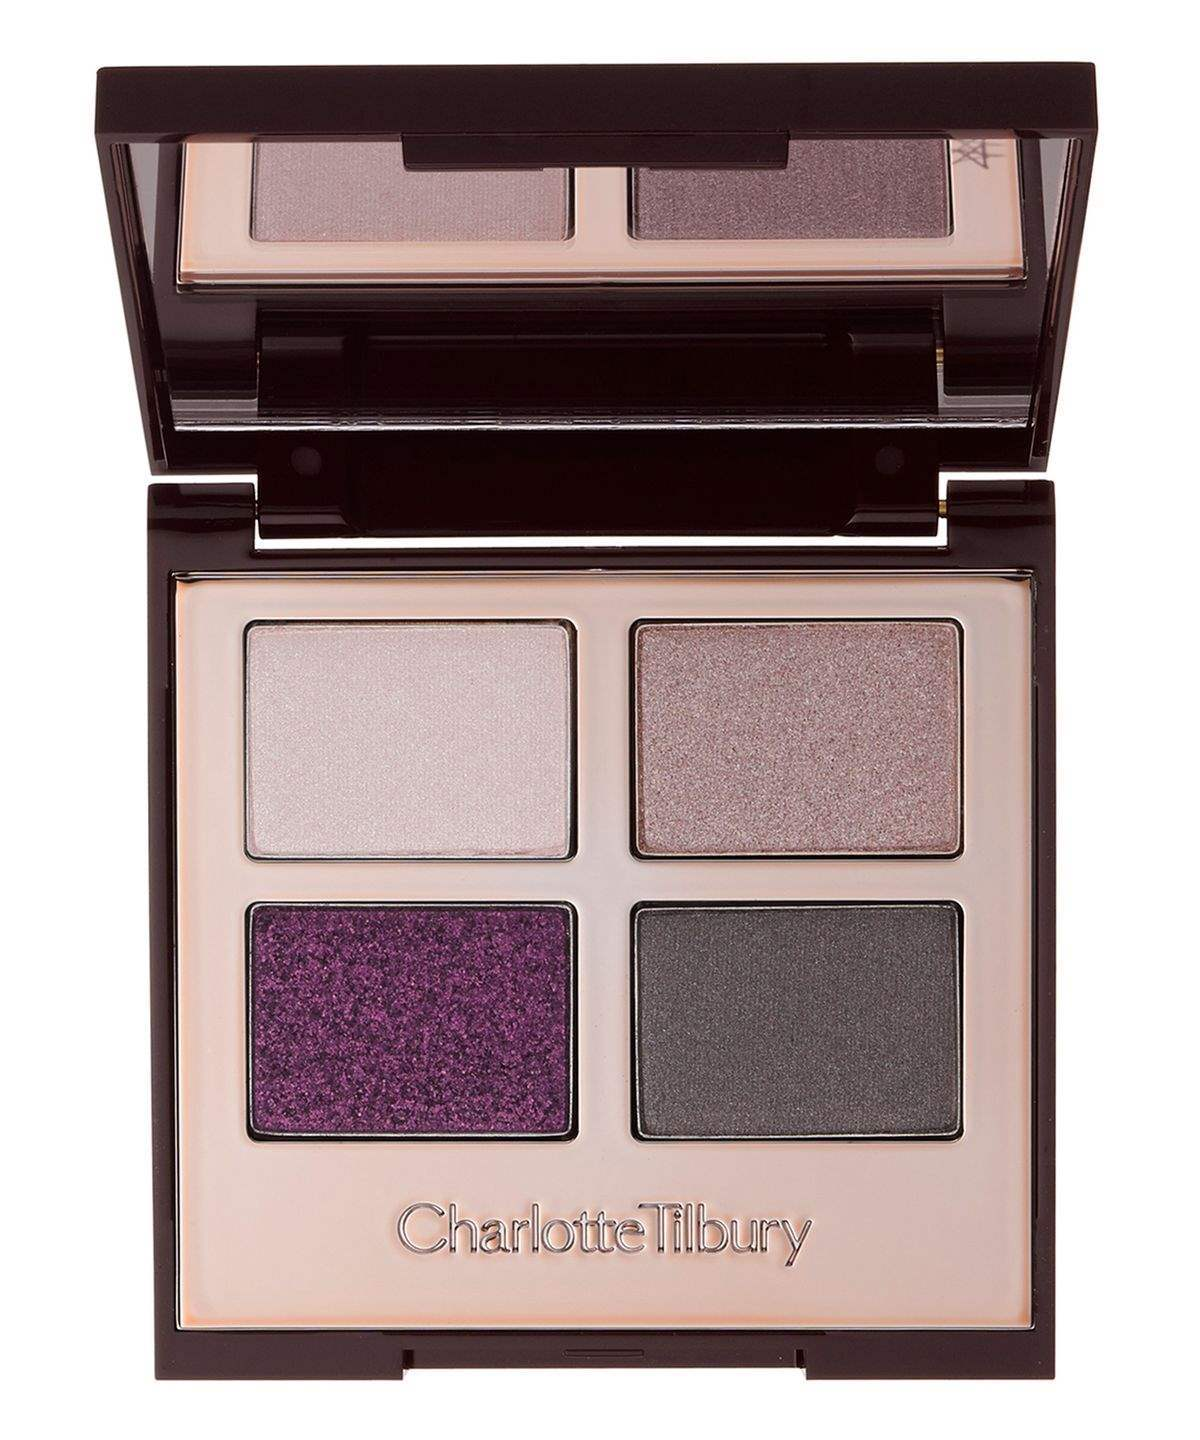 Палетка Charlotte Tilbury Luxury Palette The Glamour Muse